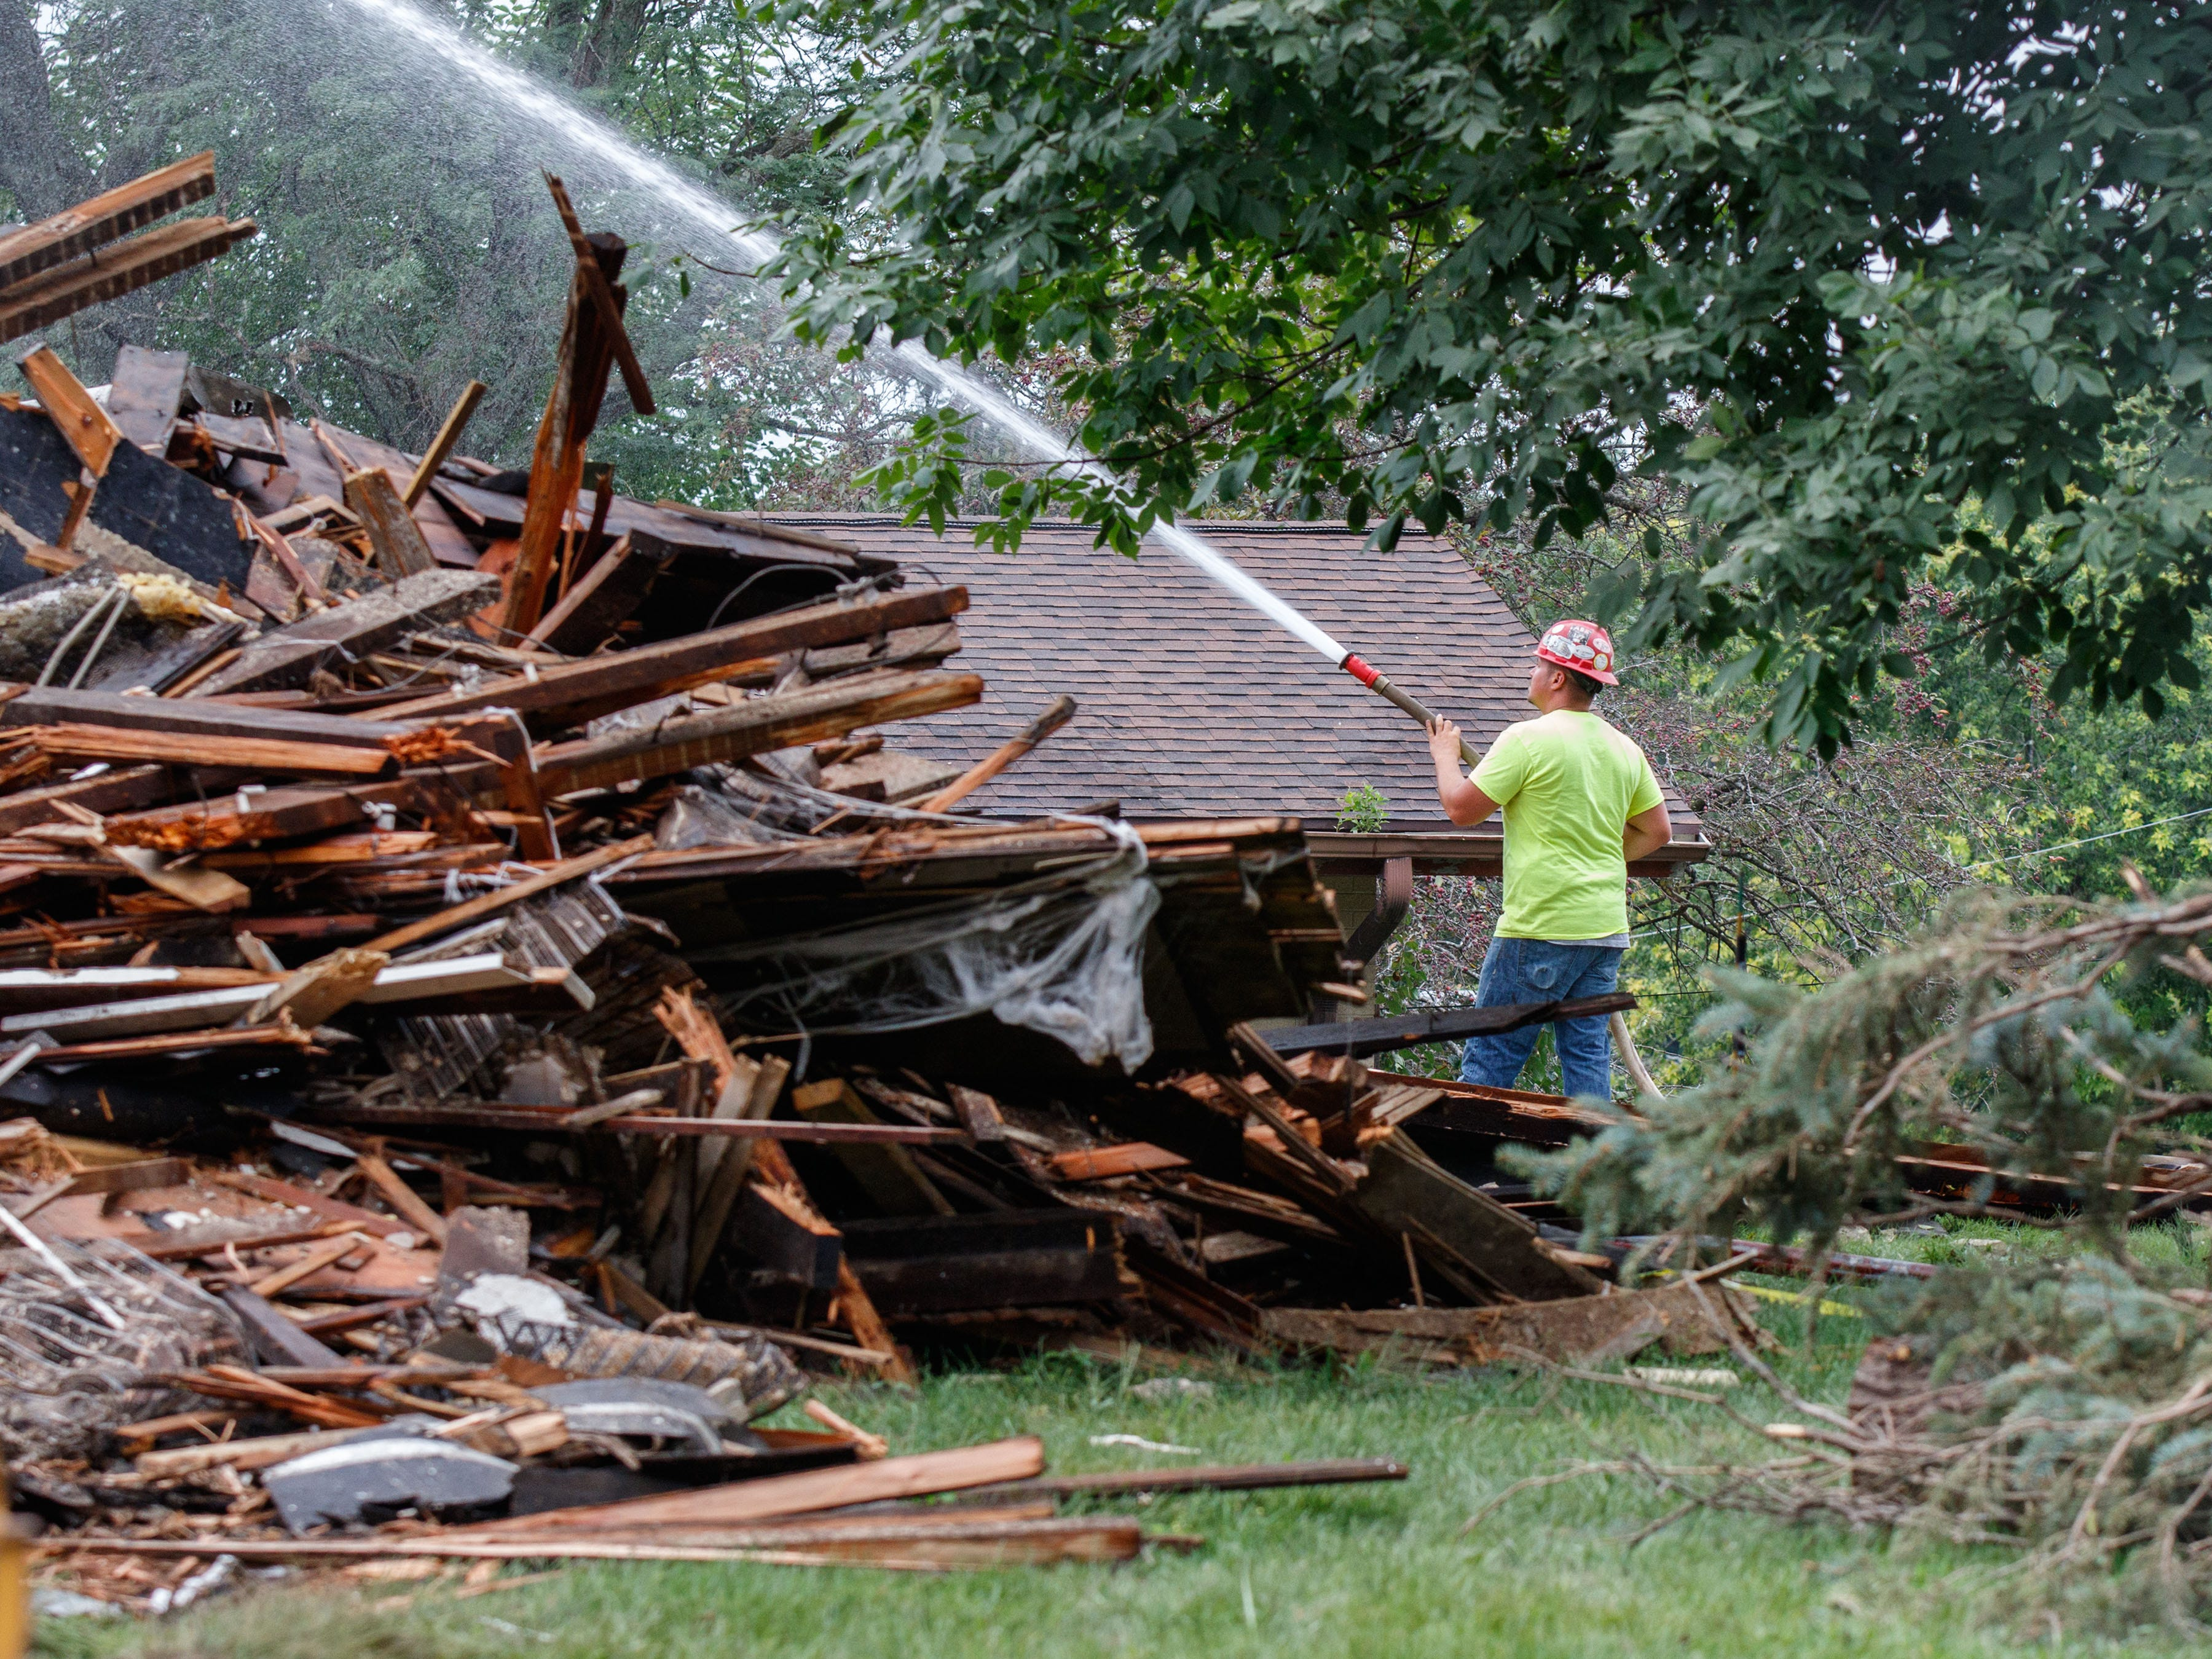 A construction worker hoses down debris after the demolition of the historic Casper Sanger house at Catholic Memorial High School on Monday morning, Aug. 20, 2018.